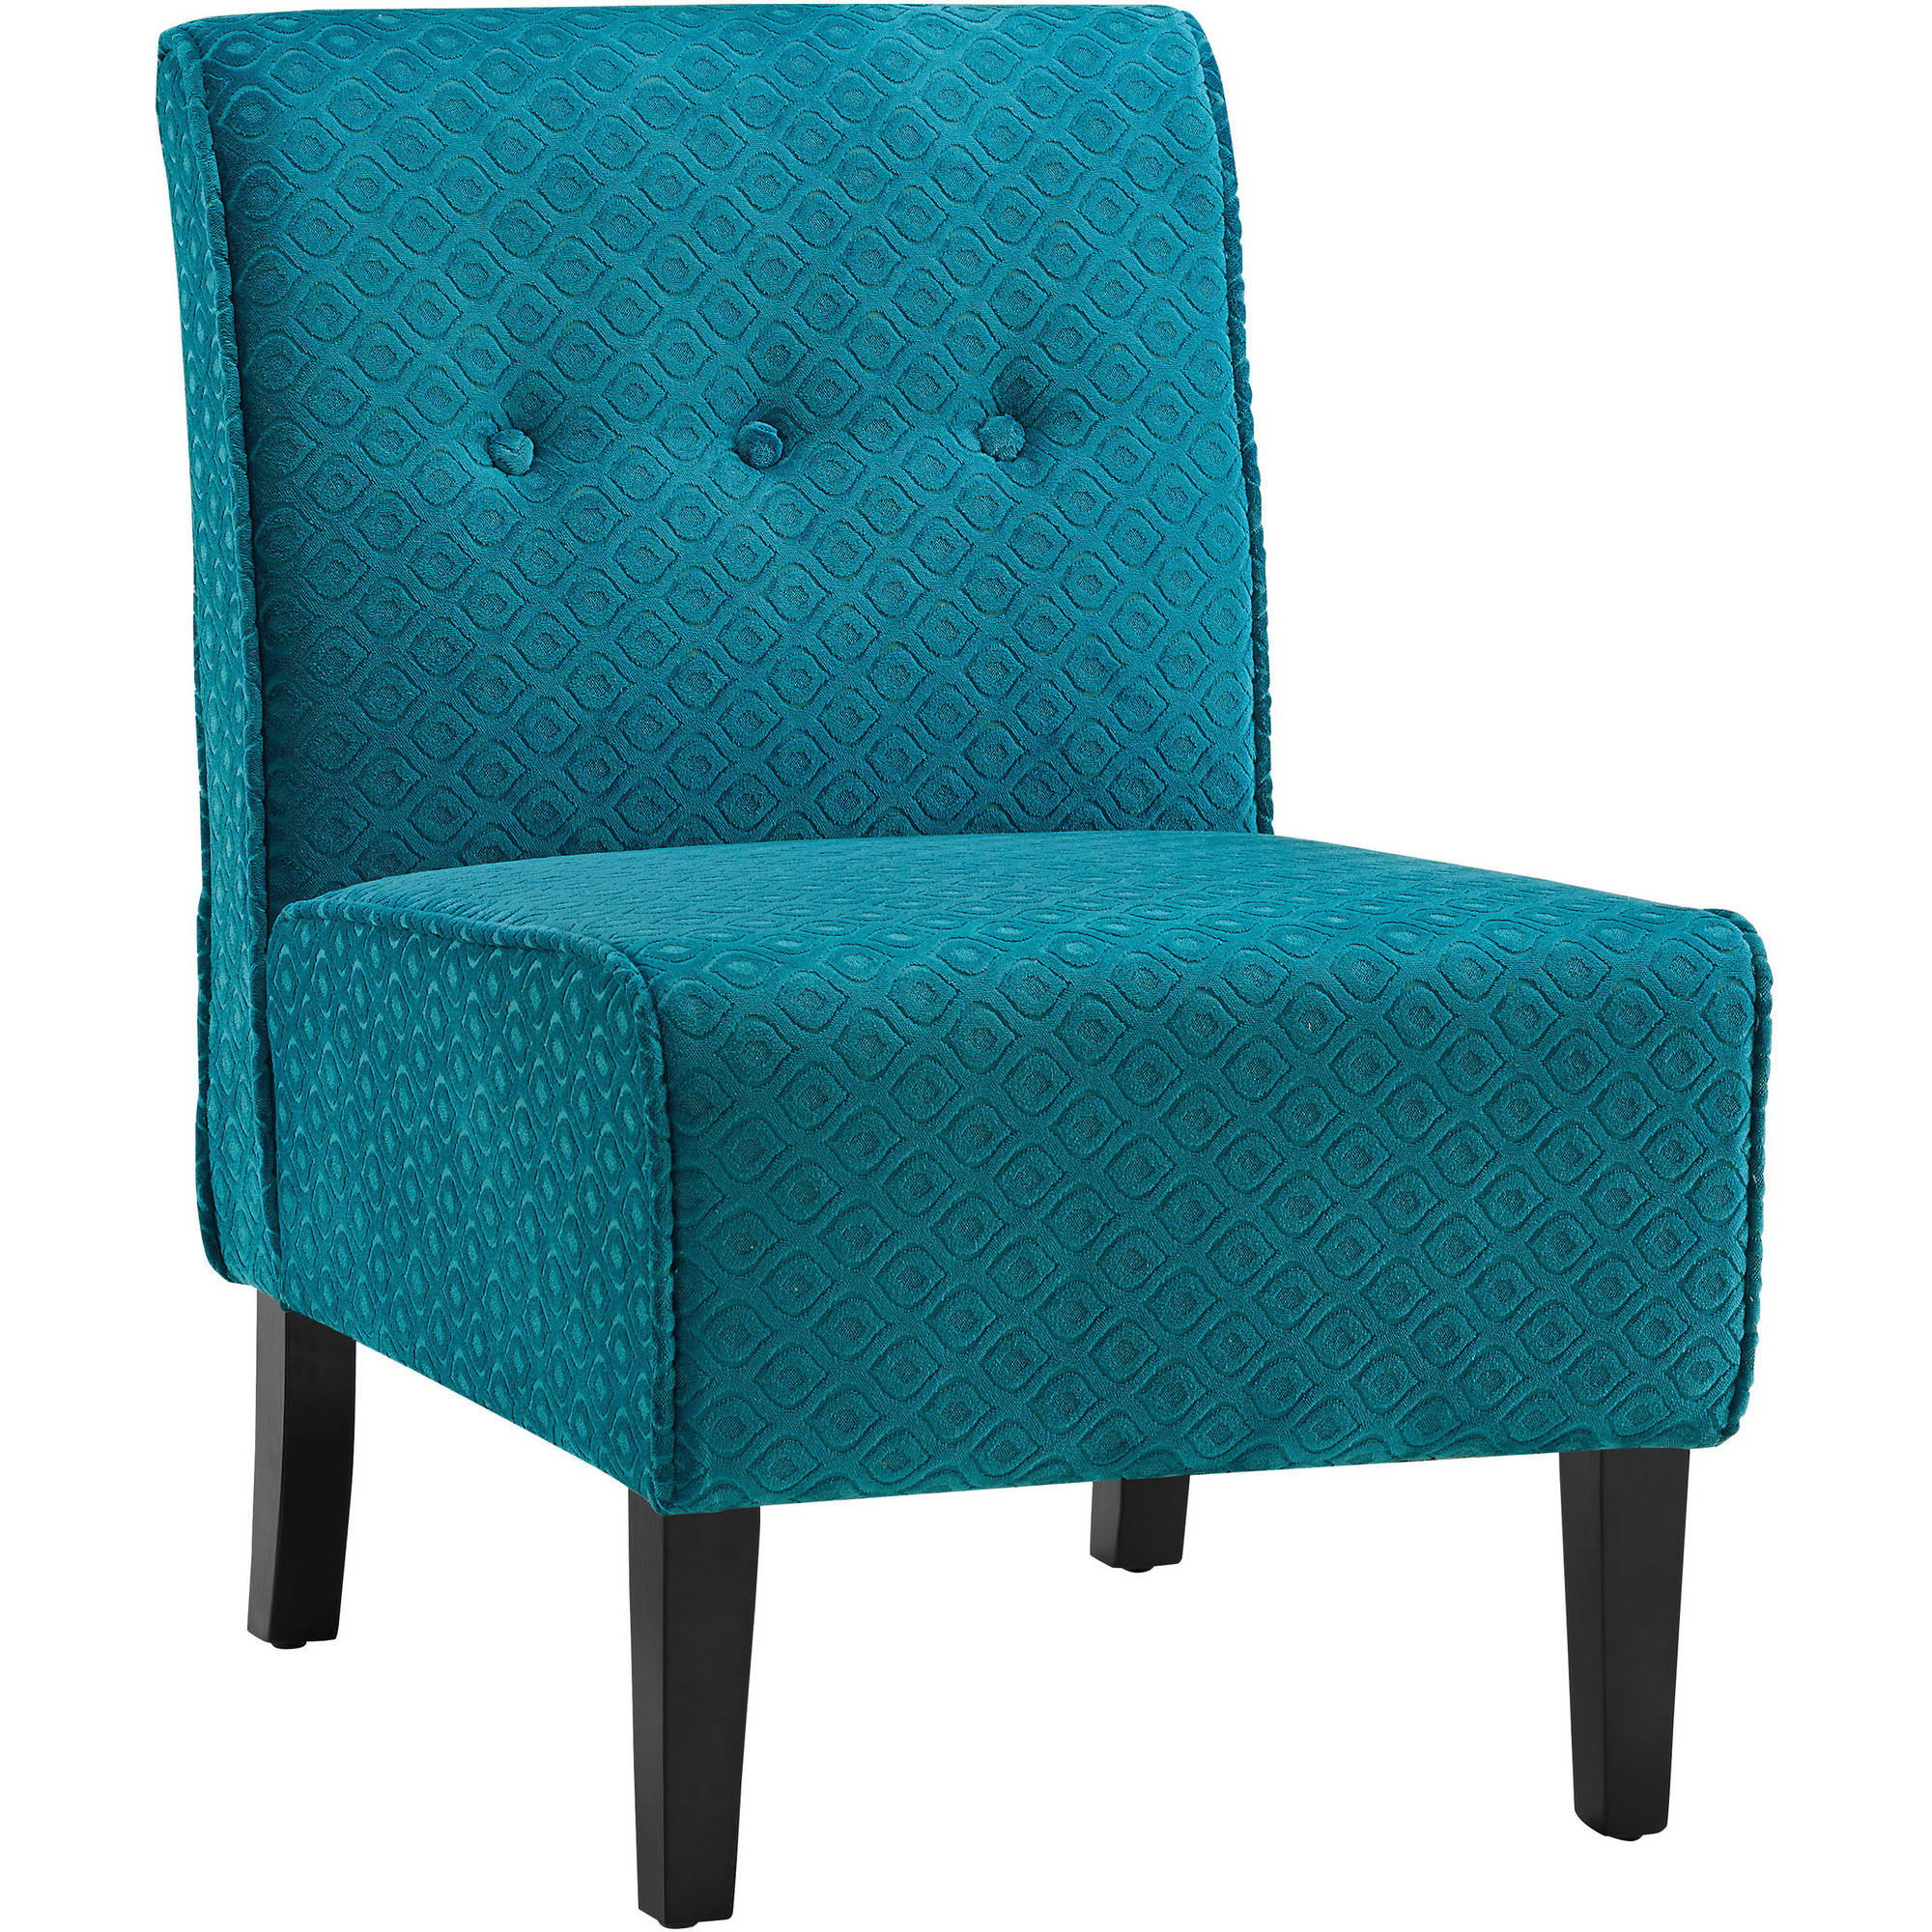 Linon Coco Accent Chair, Teal Blue, 18 inch Seat Height